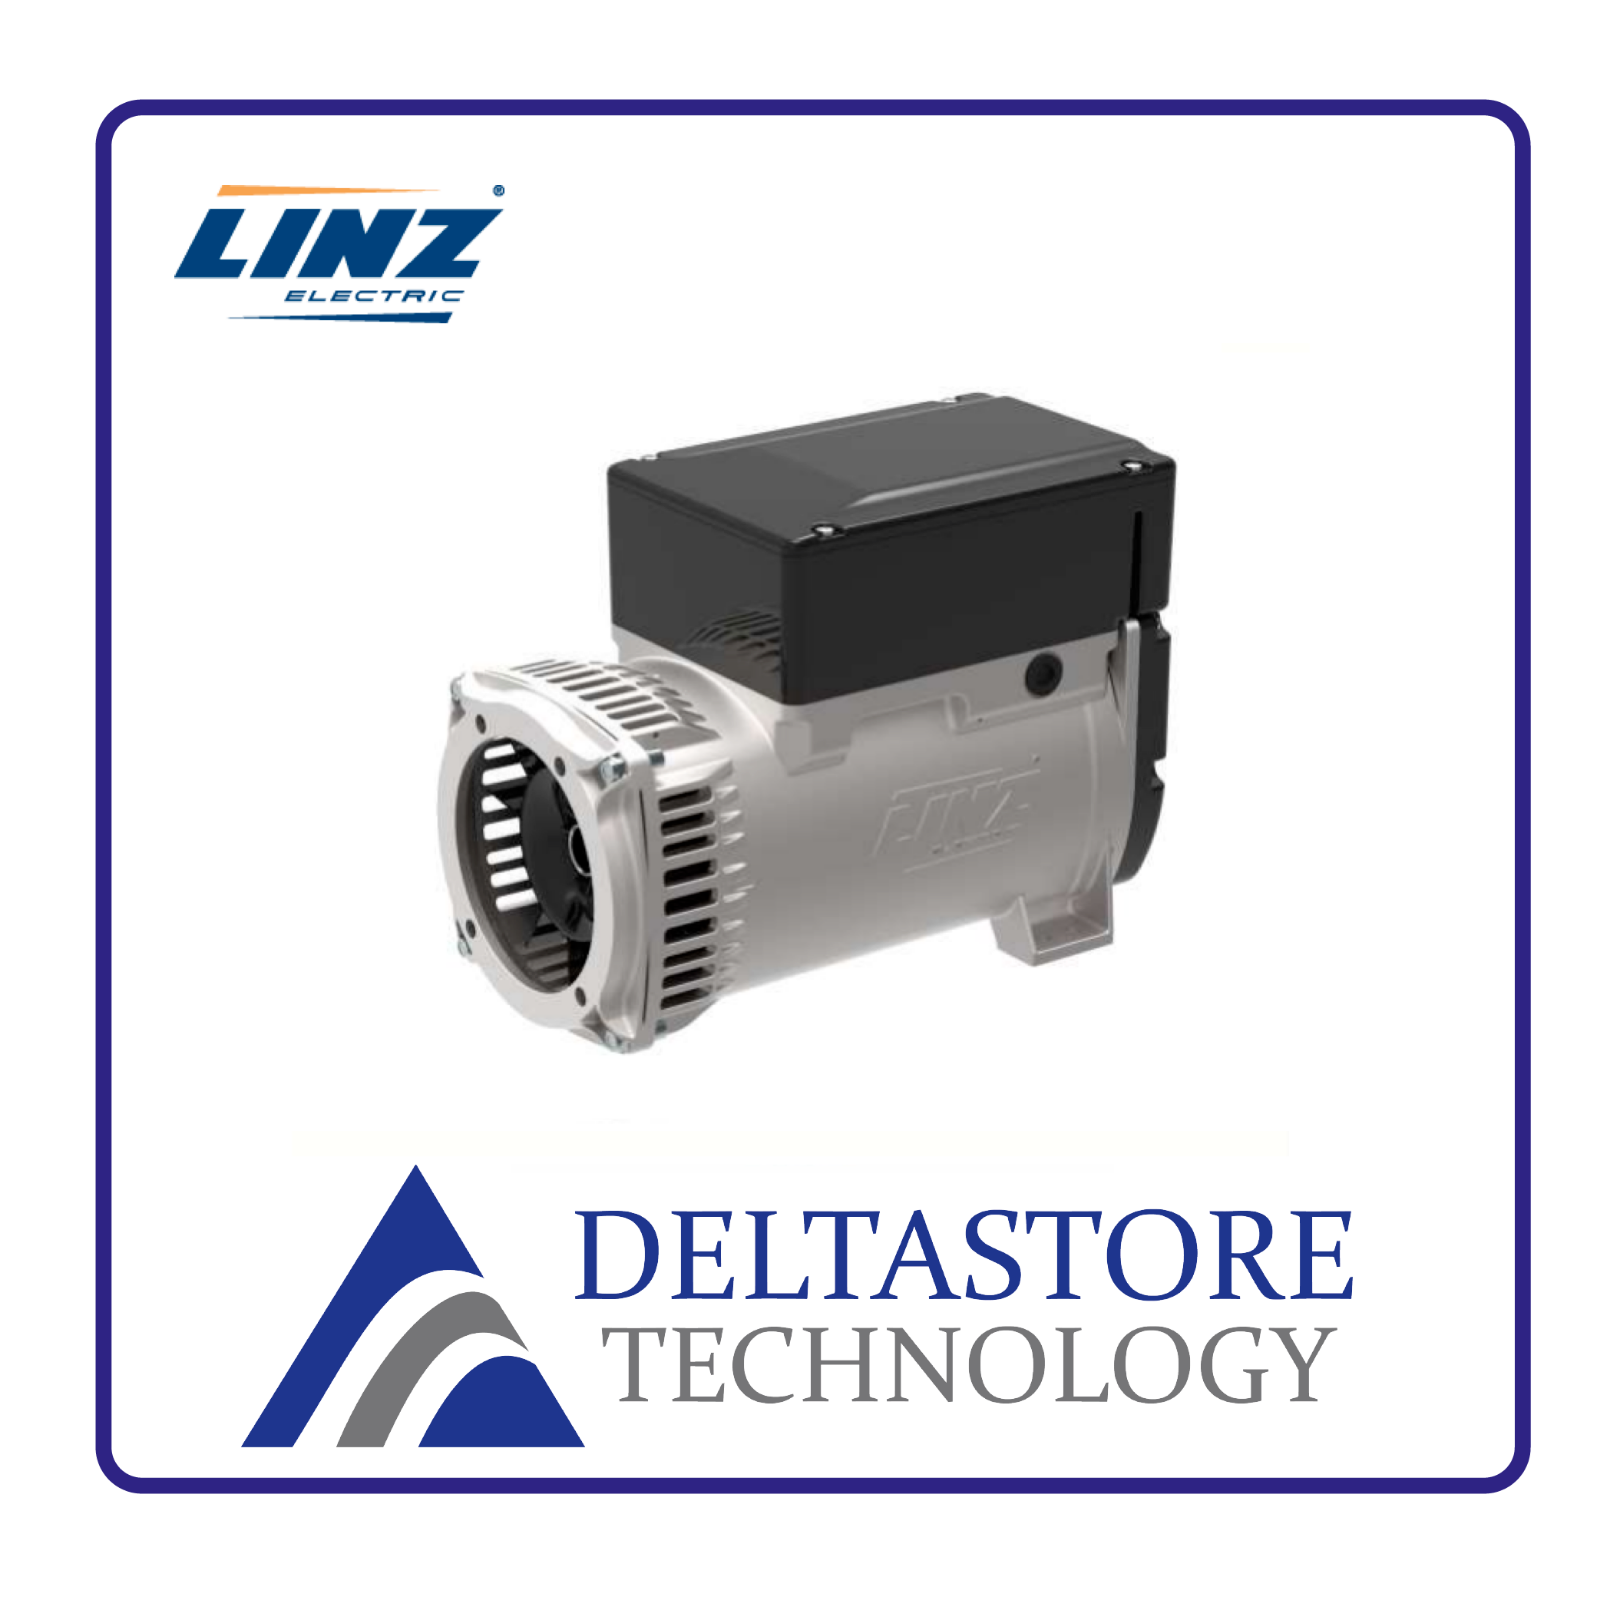 ALTERNATORE LINZ E1S11KE DA 10 A 11,5 kVA AVR + COMPOUND - FLANGIA A SCELTA